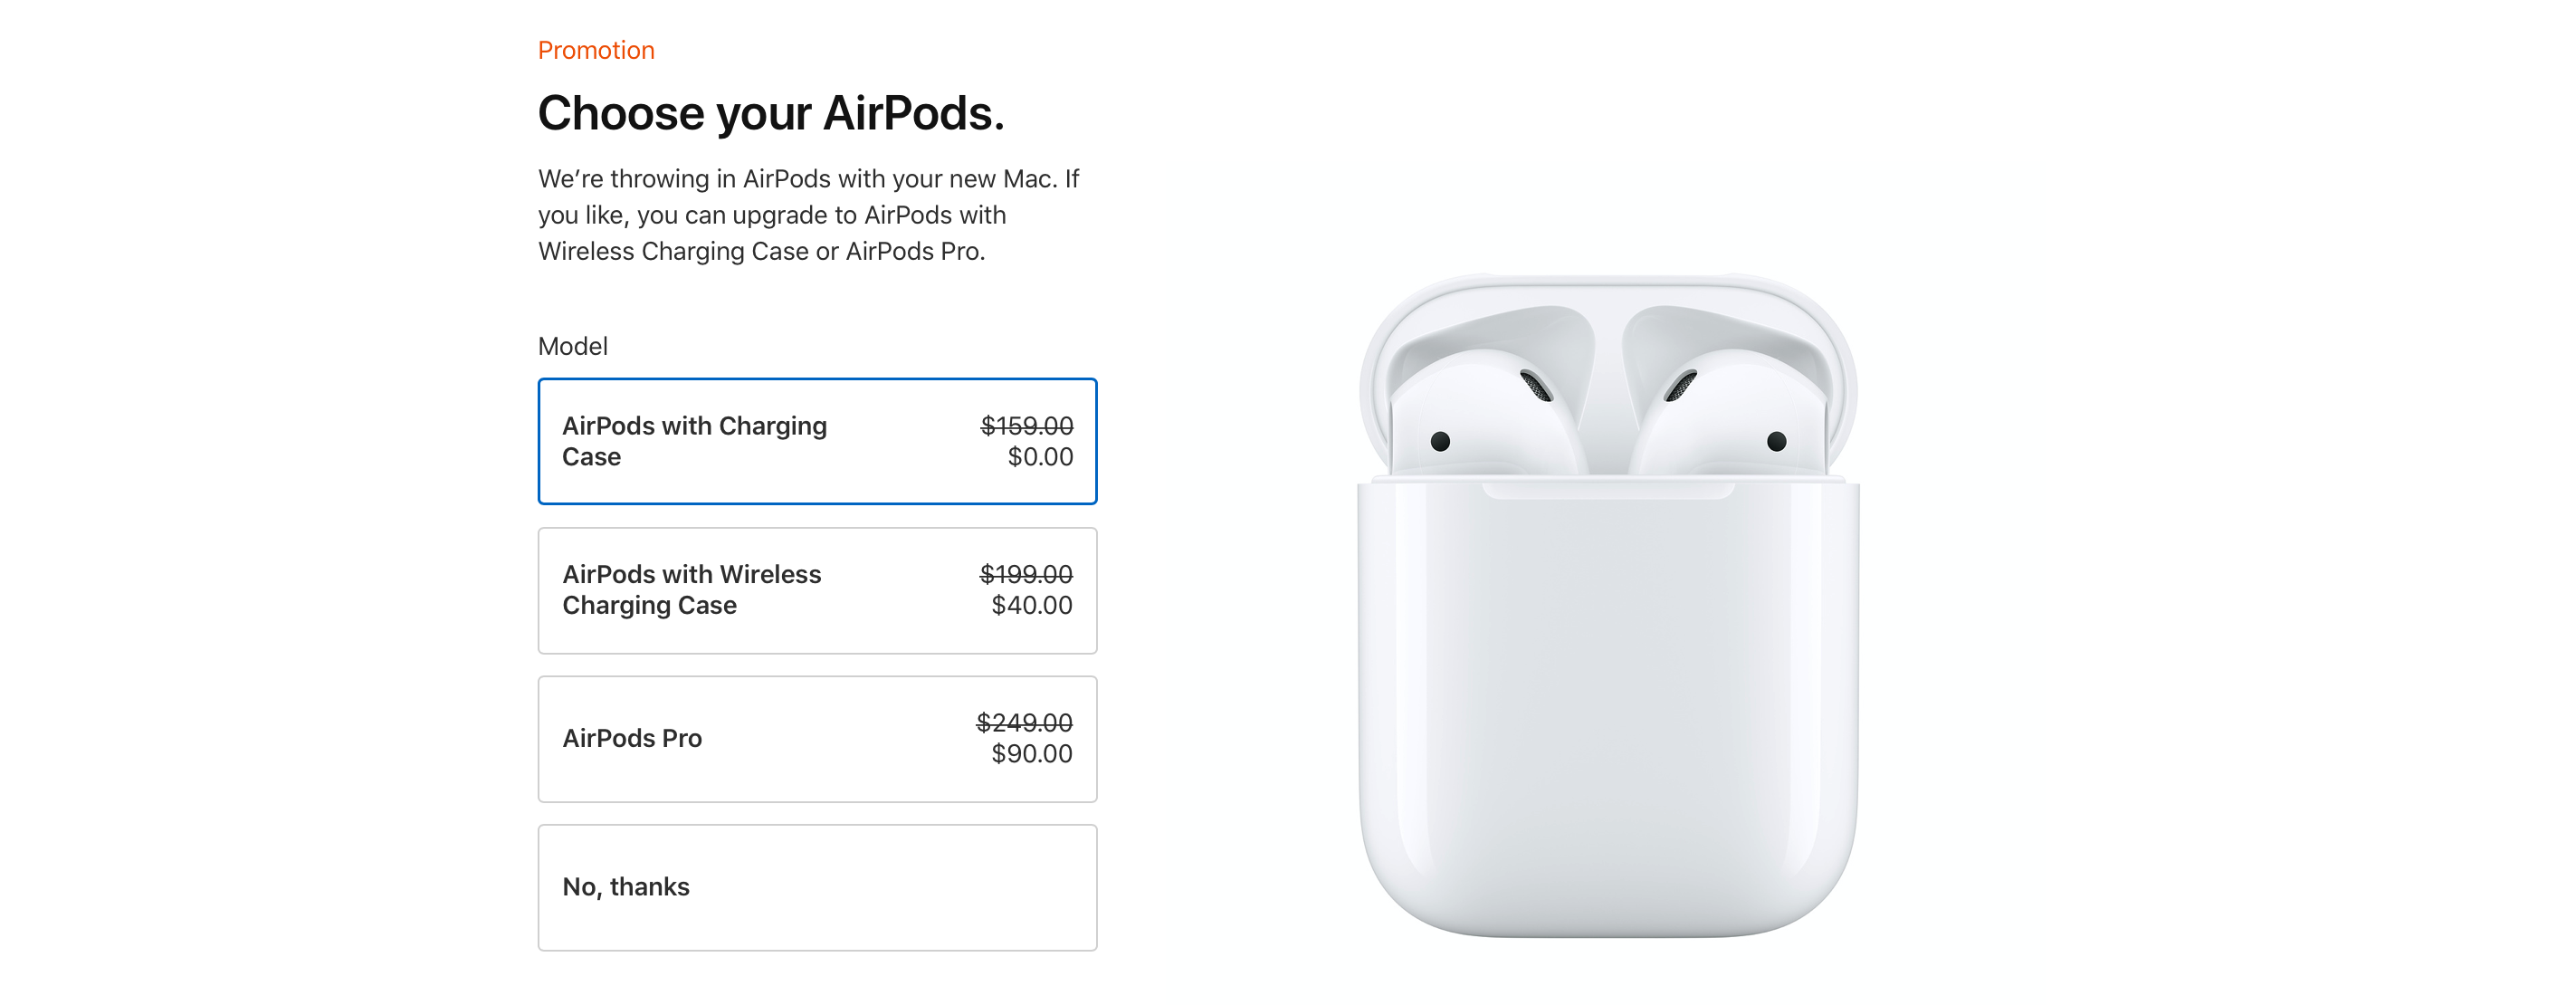 "<span href=""https://9to5mac.com/2020/06/15/apple-back-to-school-promotion-free-airpods/"">Apple 2020 de Regreso a la Escuela promo: Libre AirPods con Mac y iPad compras</a>"